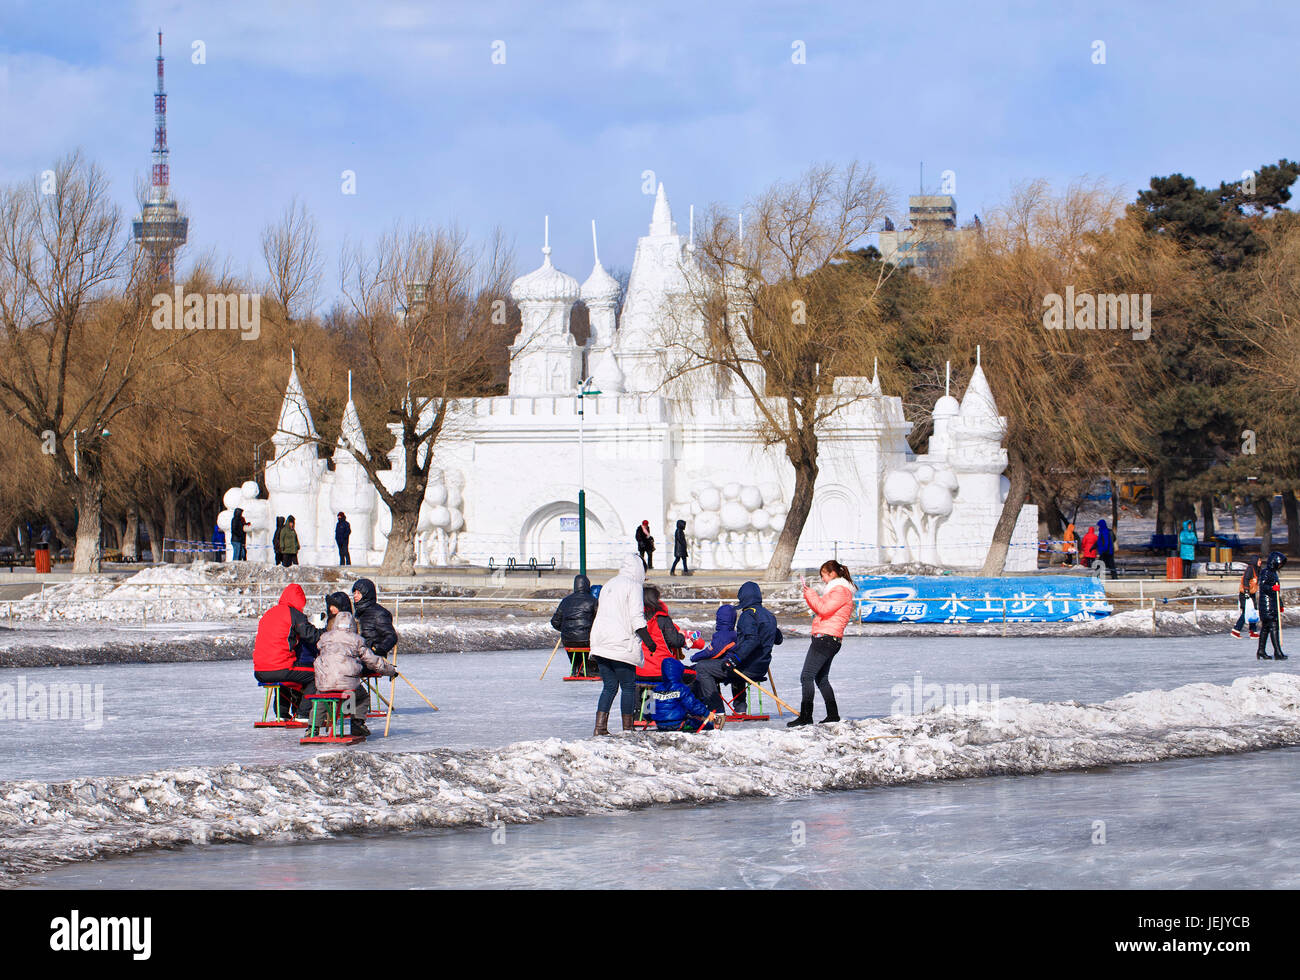 CHANGCHUN – FEB. 4, 2014. People have fun with sledging on the ice in Nanhu Park Changchun, capital of northeast - Stock Image